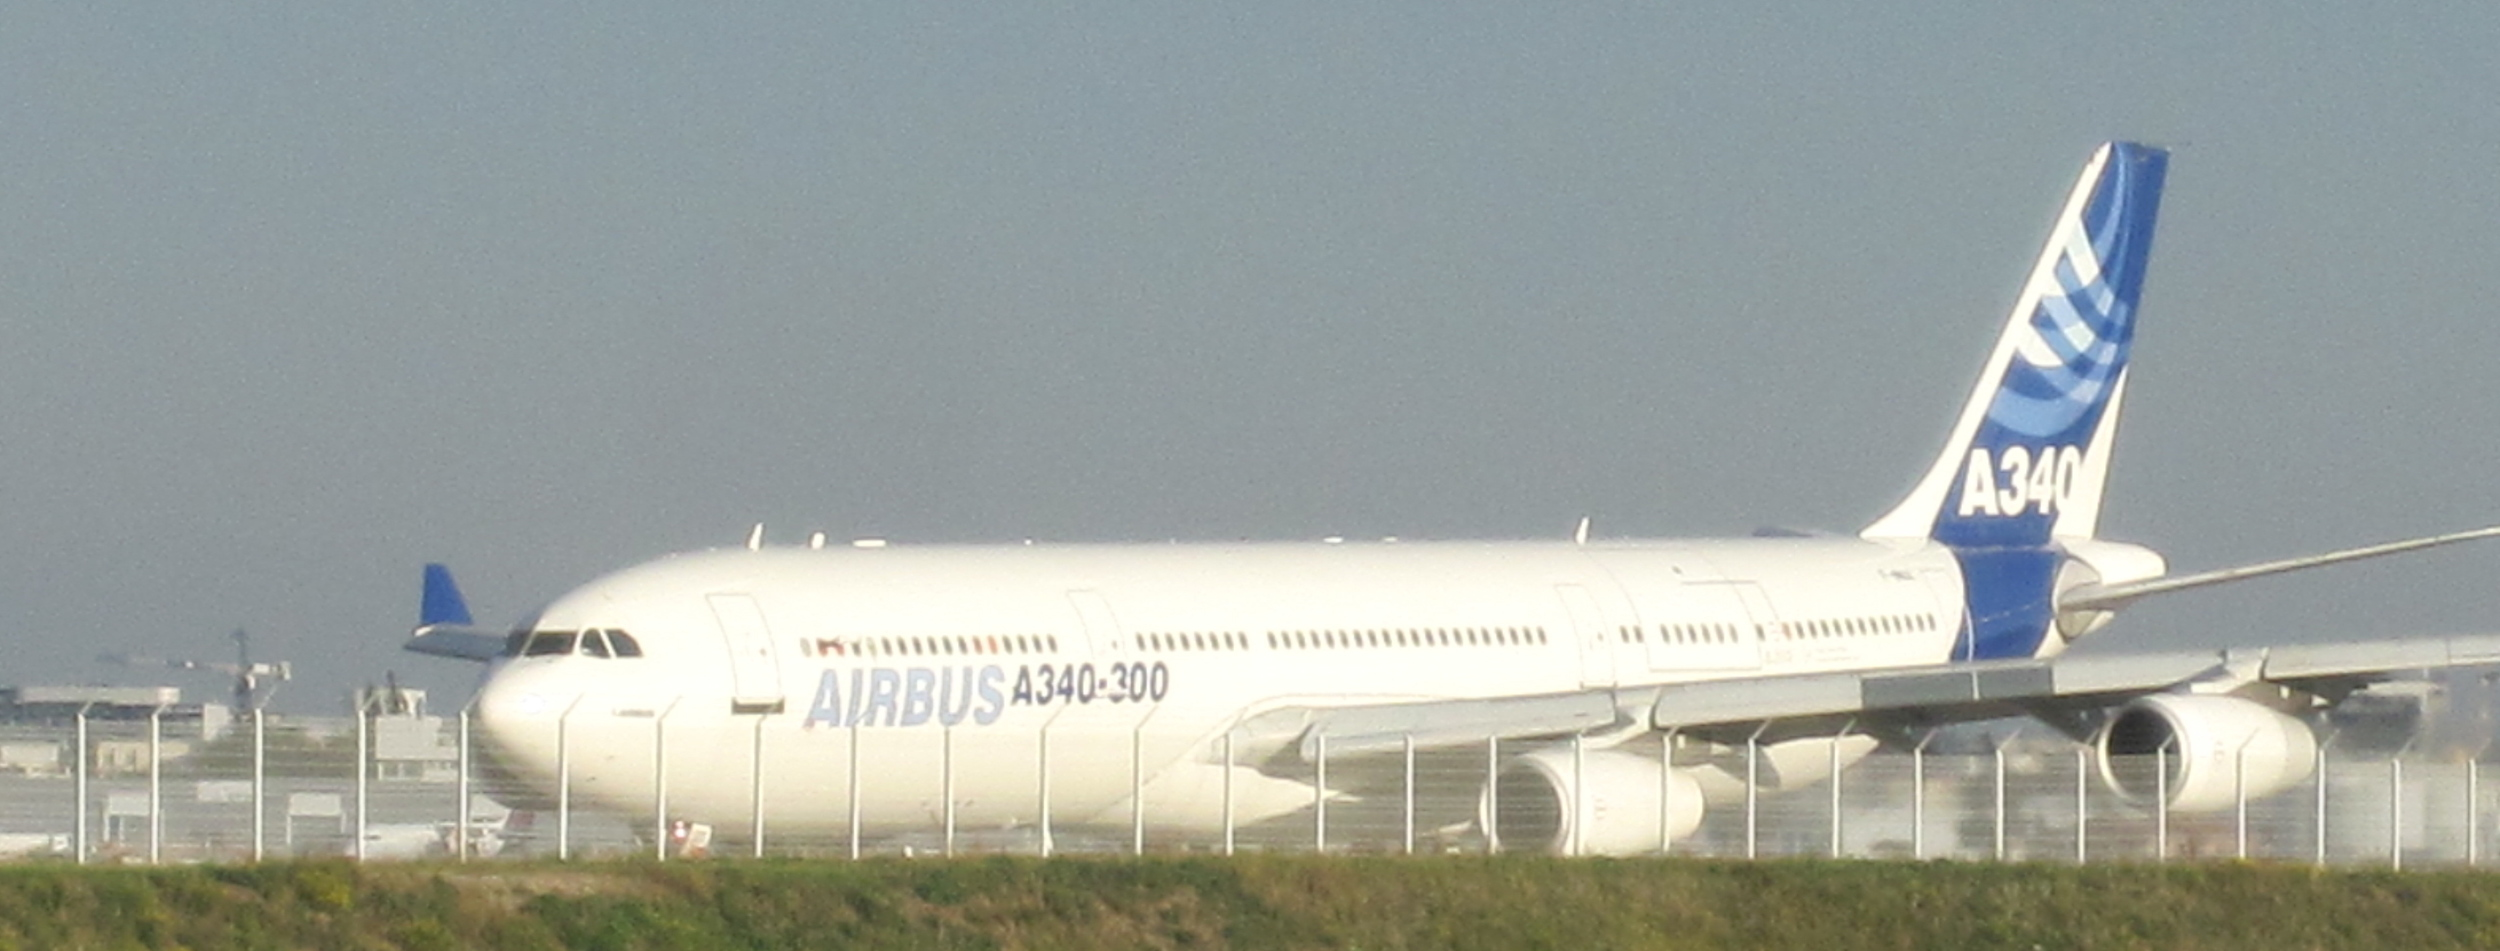 A sight that is becoming rarer and rarer, an A340-300! (and I still have not flown any of the type!)